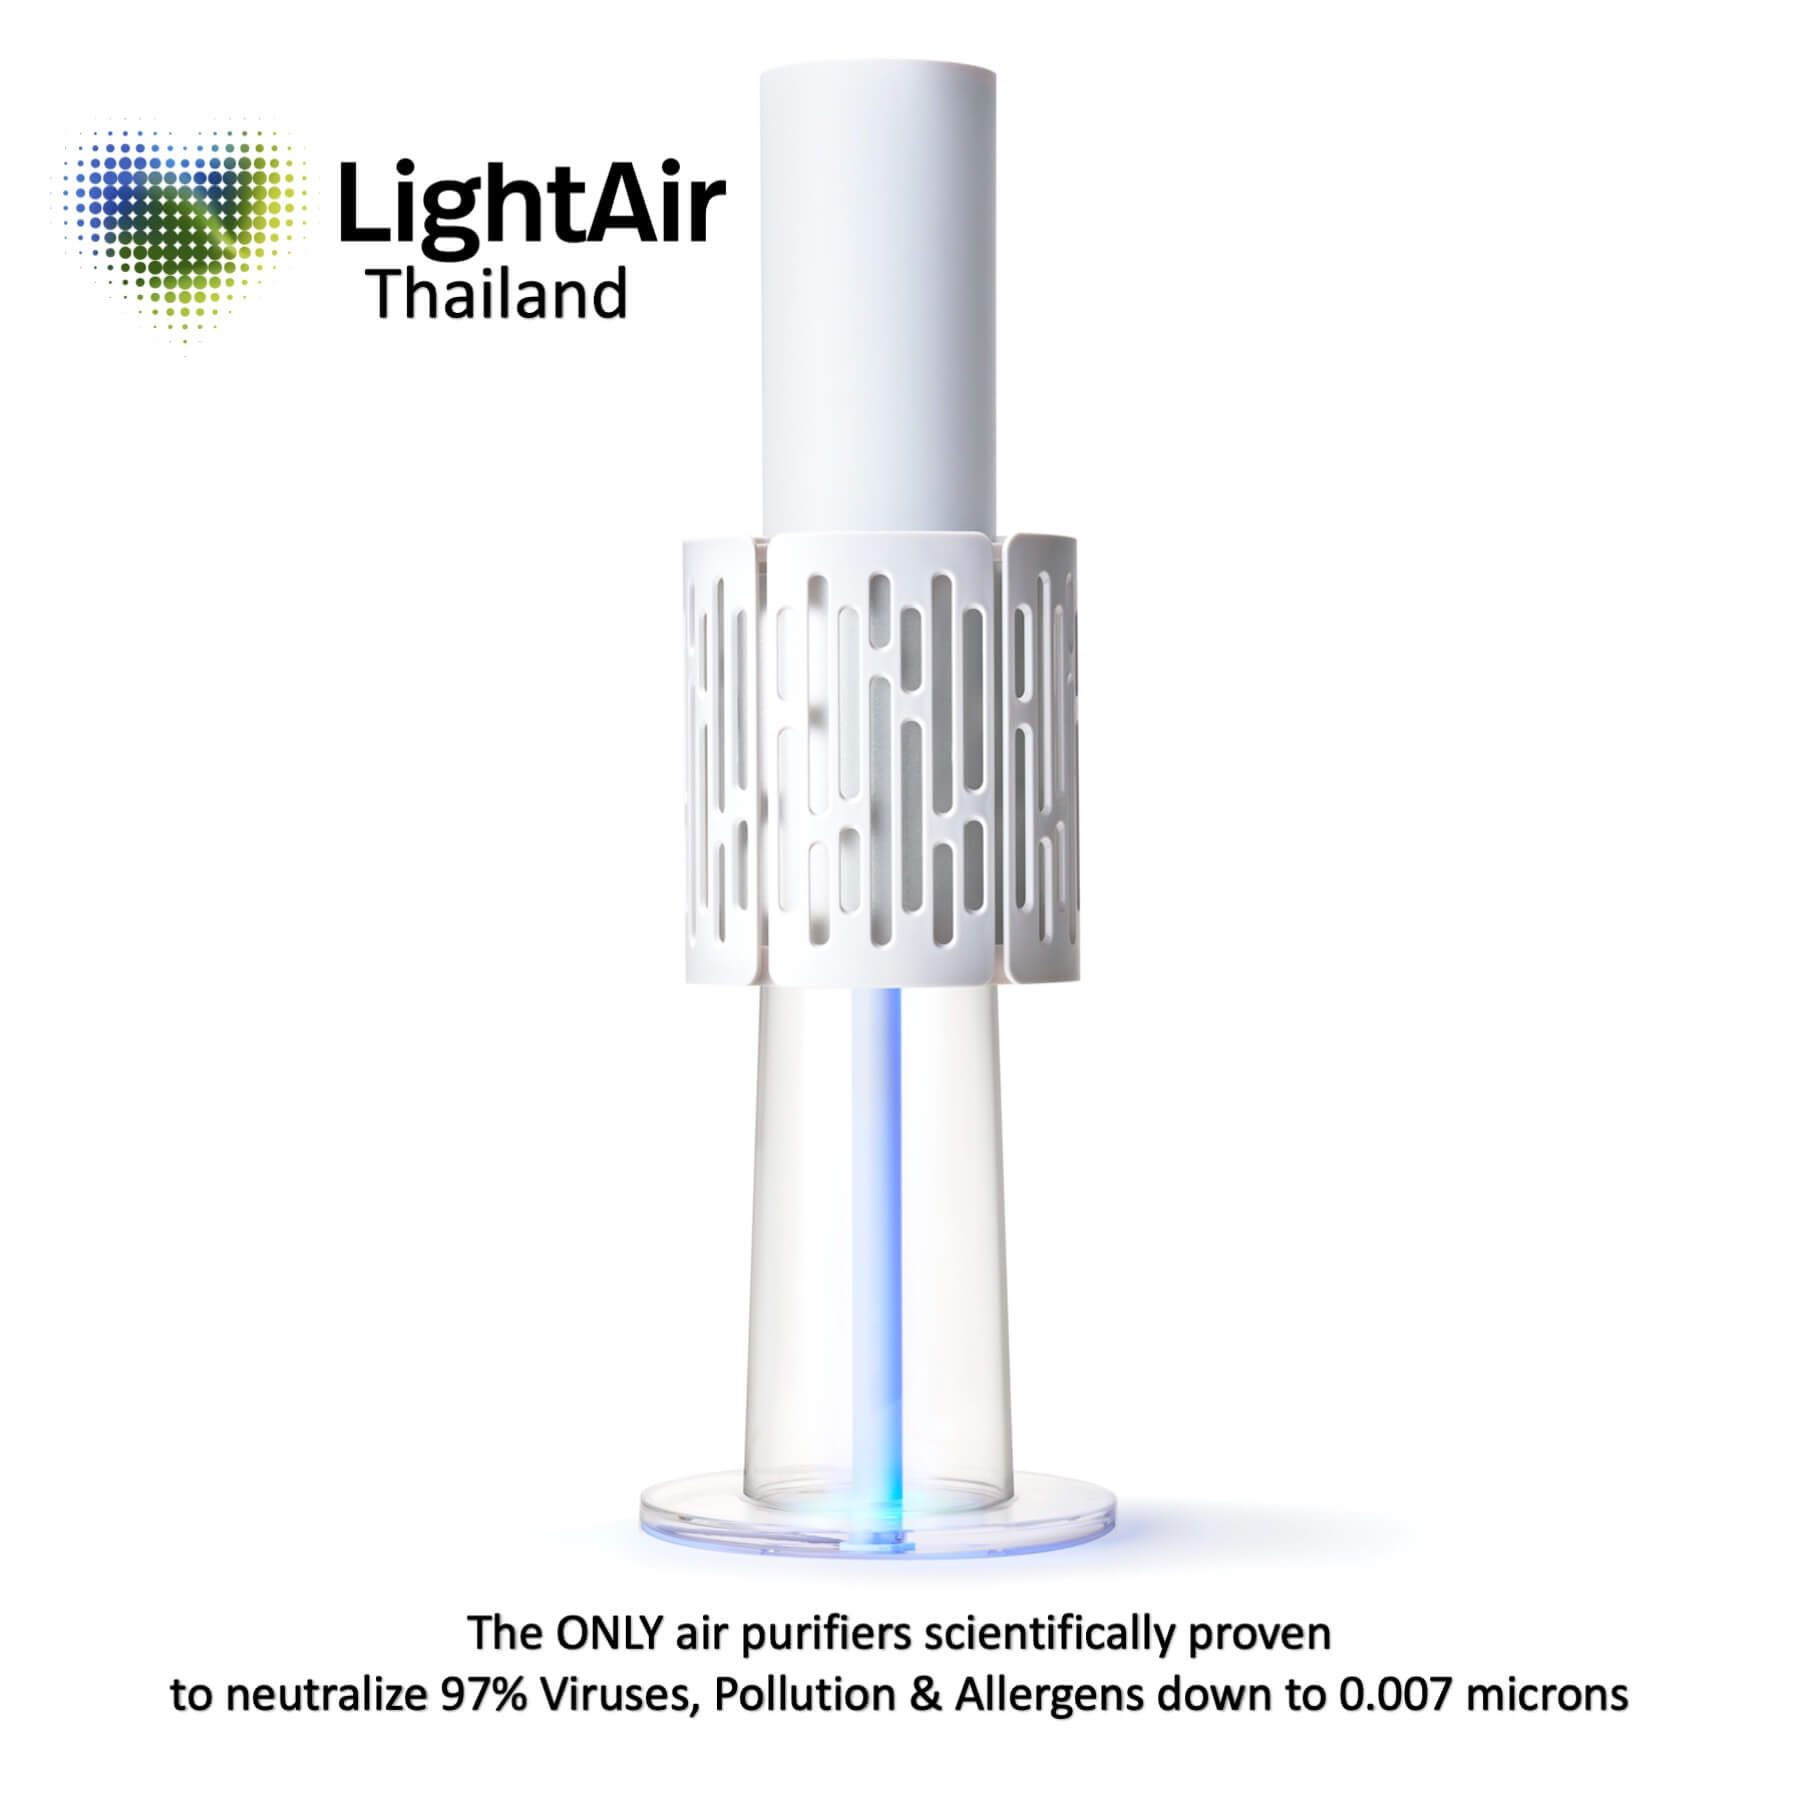 LightAir IonFlow Evolution – The best air purifier for harmful particles